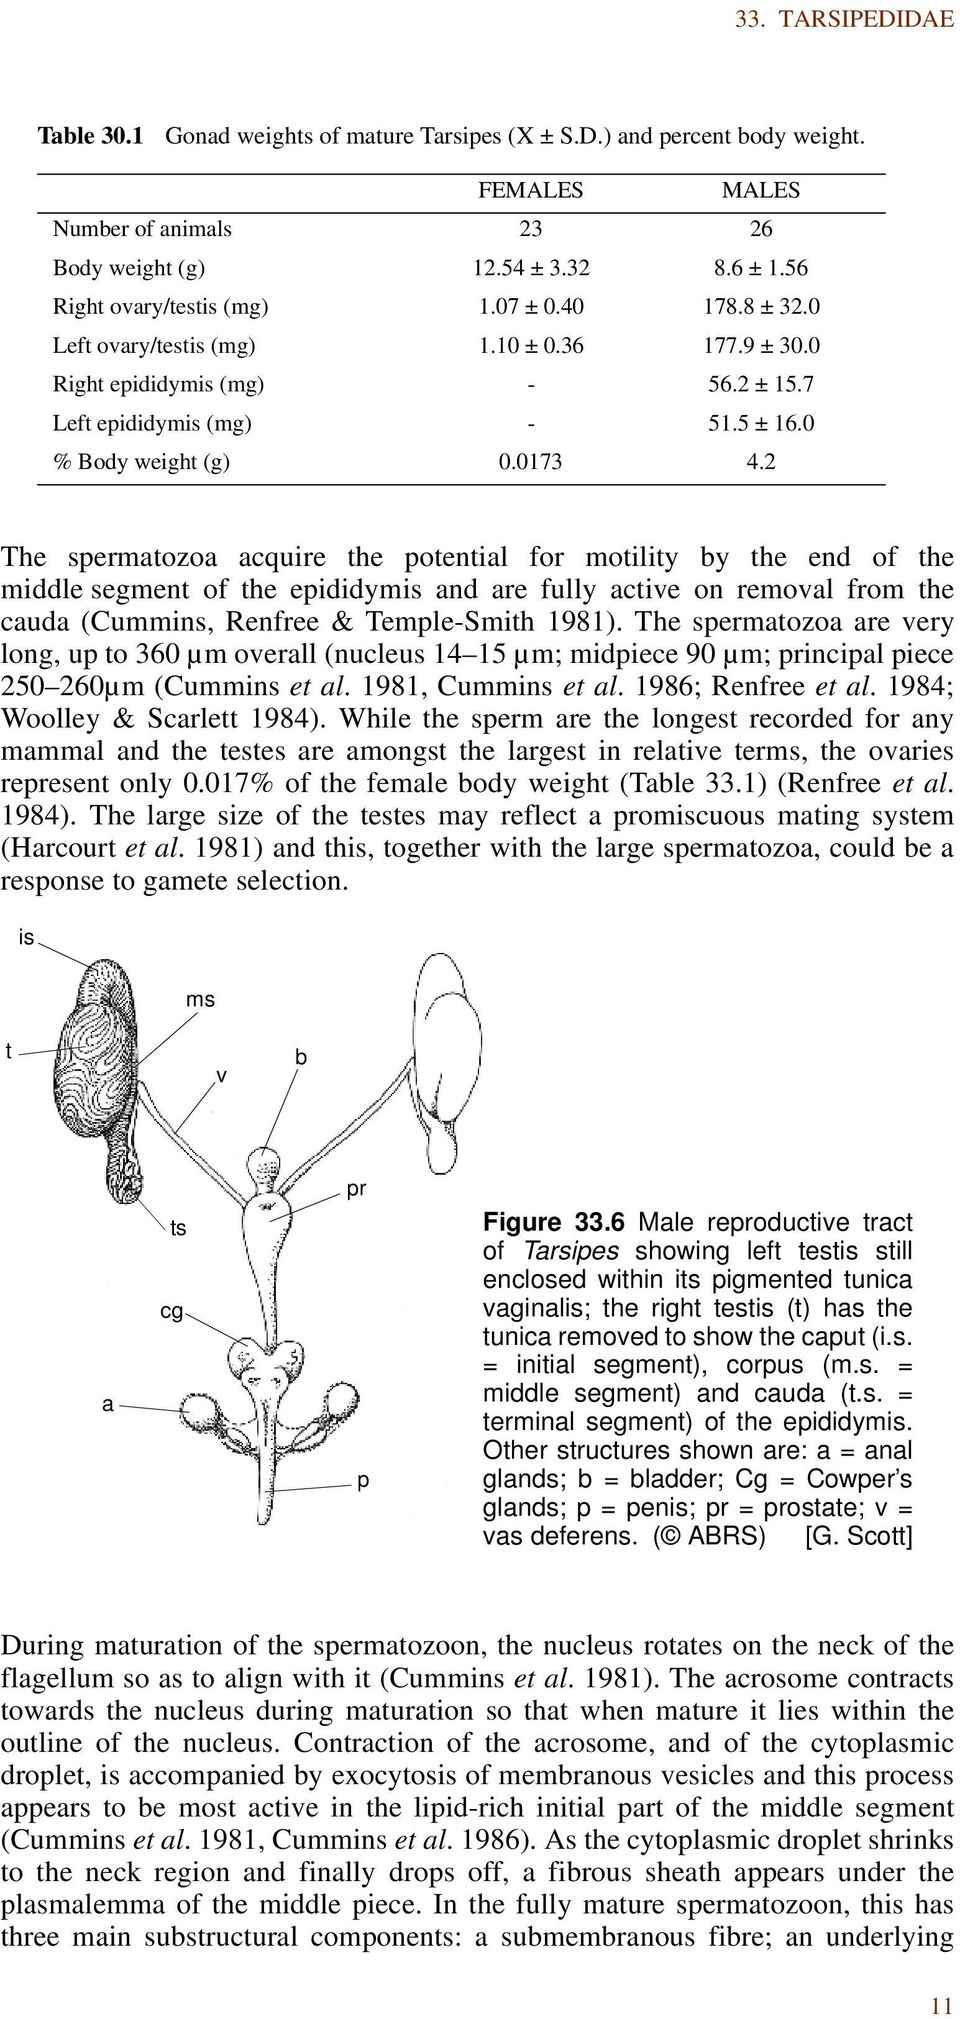 2 The spermatozoa acquire the potential for motility by the end of the middle segment of the epididymis and are fully active on removal from the cauda (Cummins, Renfree & Temple-Smith 1981).